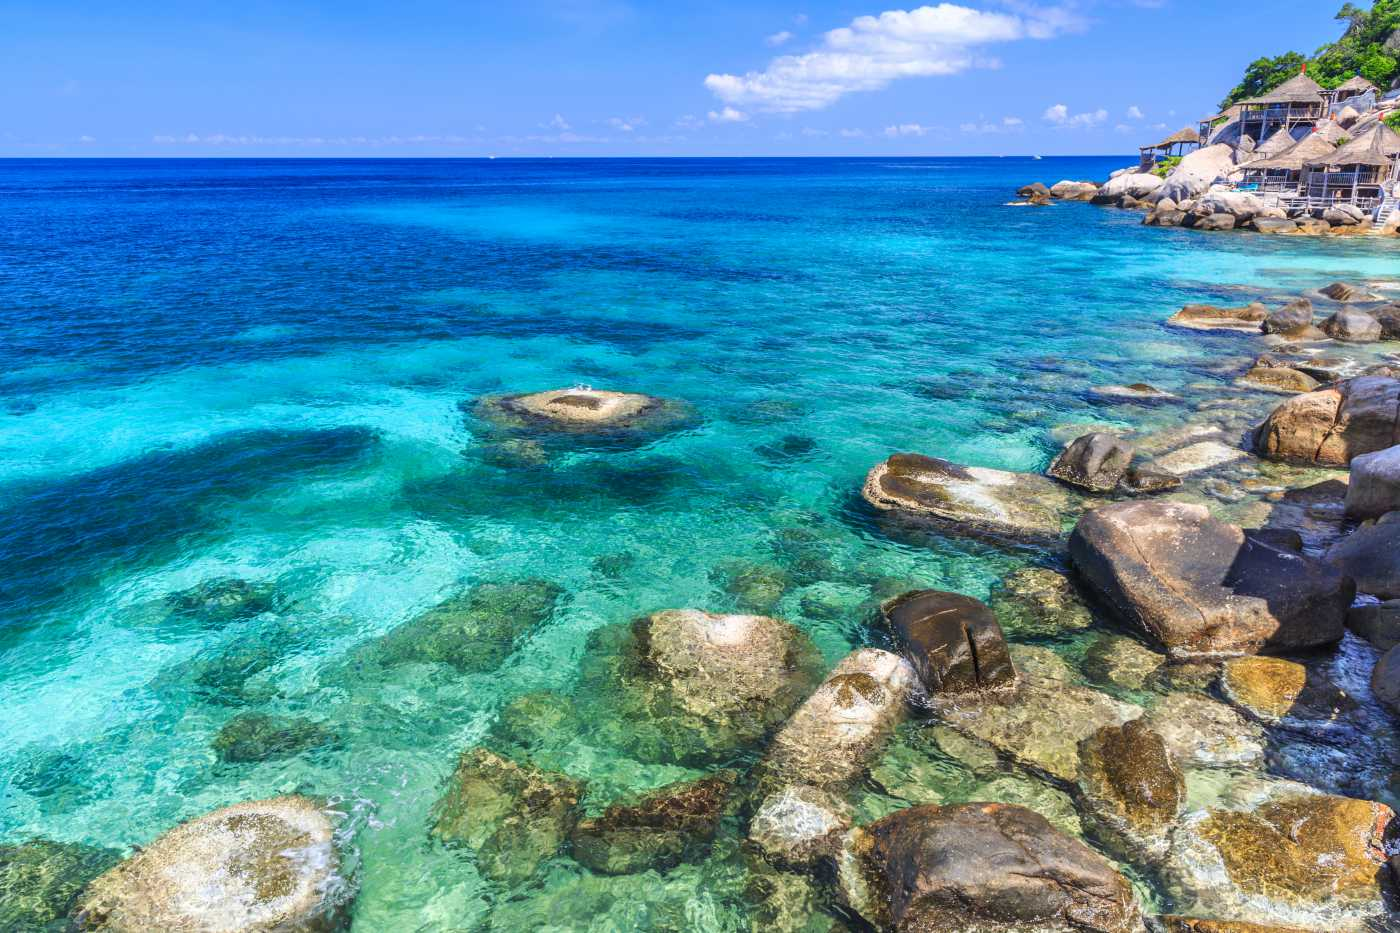 1400 Koh Tao crystal clear water Kho Tao shutterstock 142093519